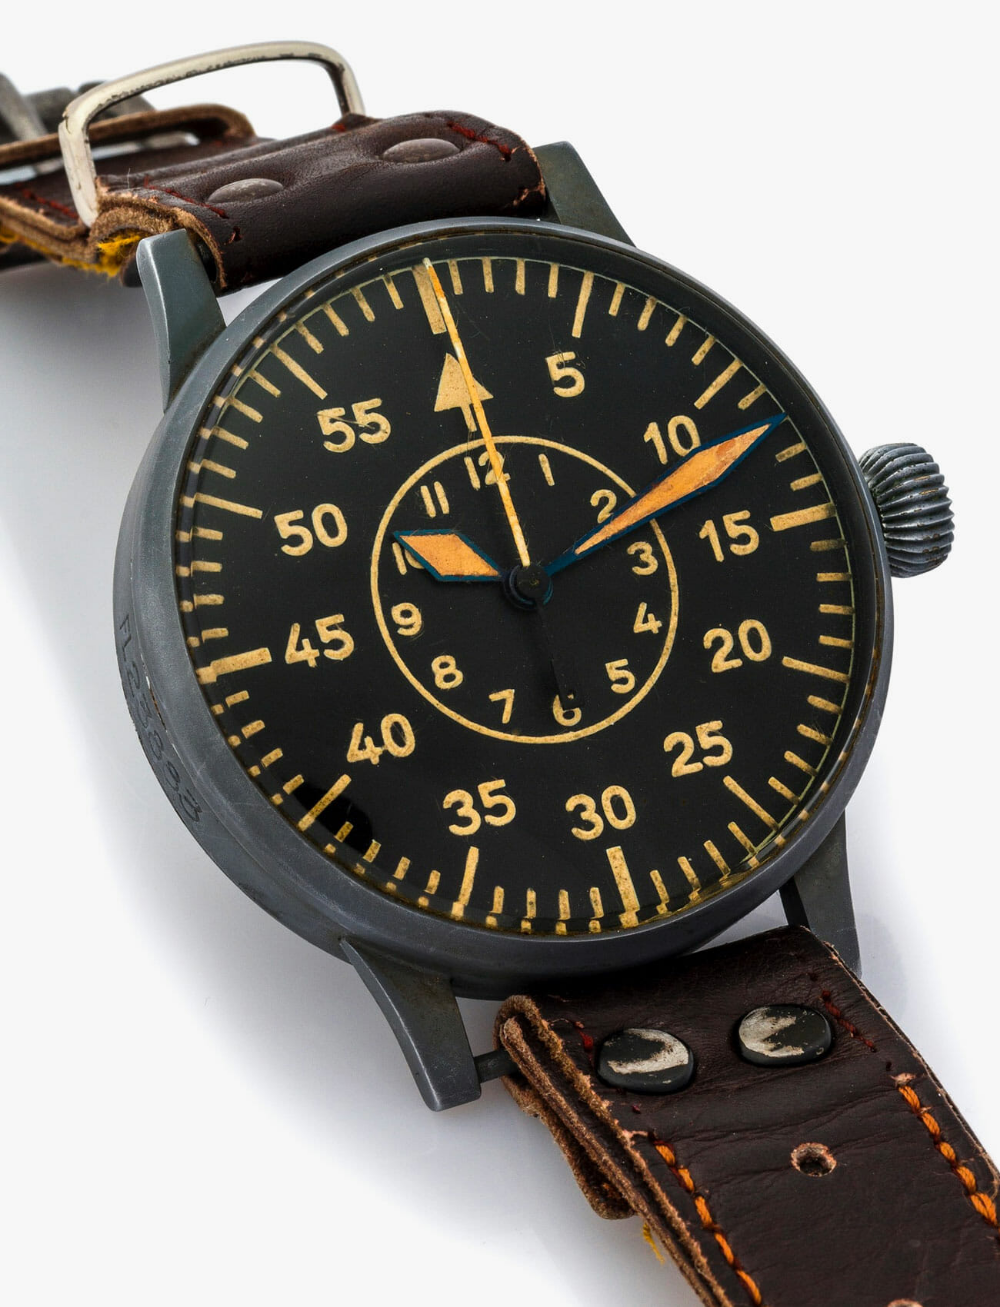 21 of the Best Military Watches and Their Histories • Gear